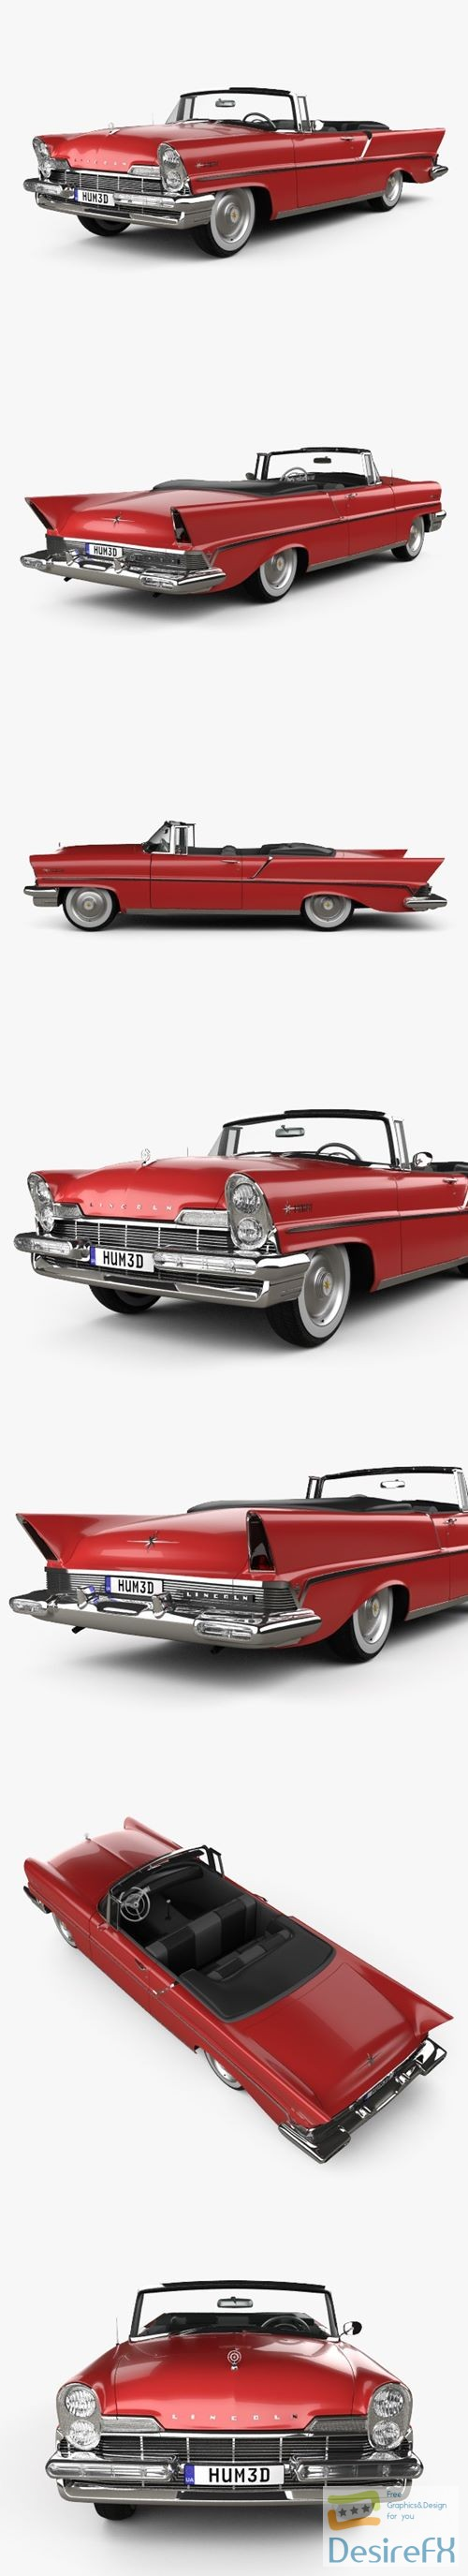 3d-models - Lincoln Premiere Convertible 1957 3D Model